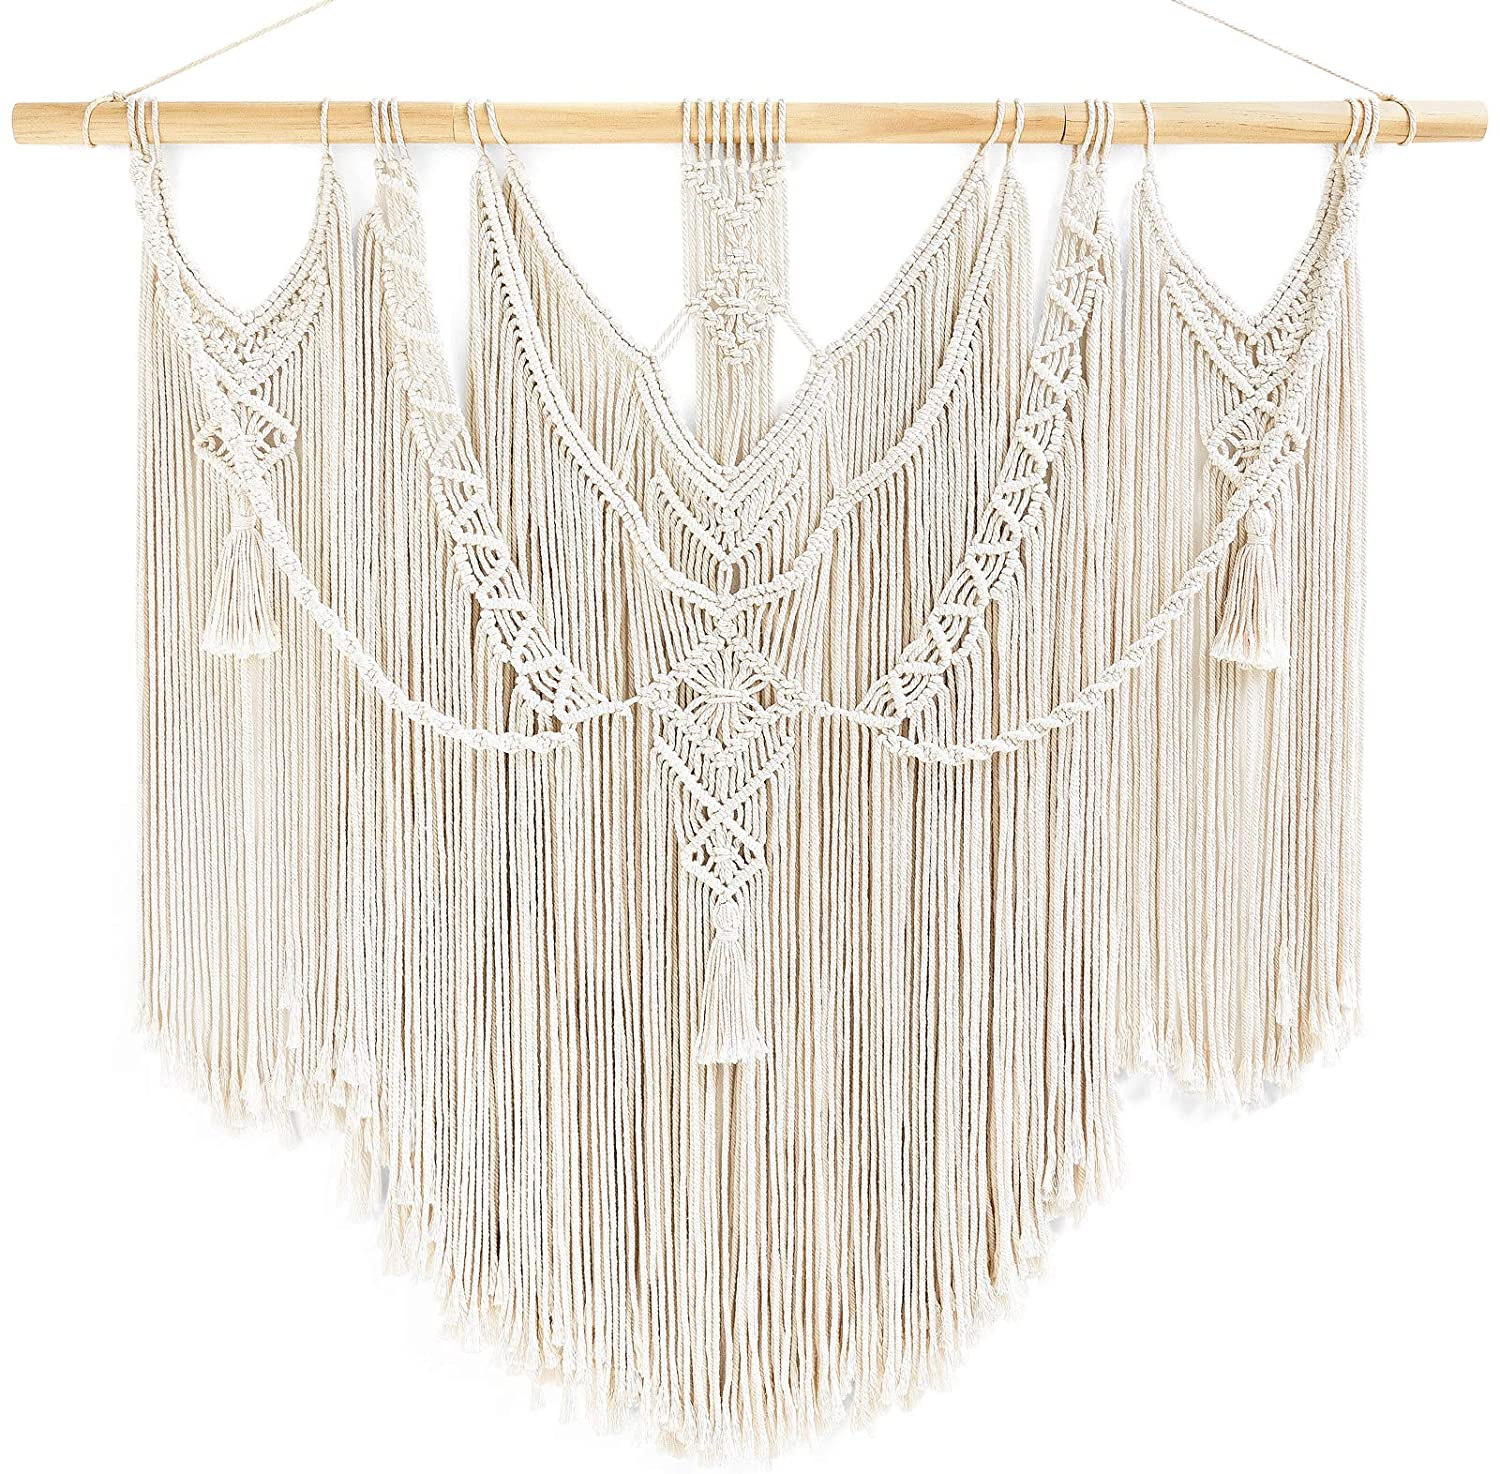 """Mkono Large Macrame Wall Hanging BohoTapestry Decor Chic Woven Home Decoration for Bedroom Living Room Apartment Dorm Gallery Perfect Handmade Gift Ideas, 36""""x35"""""""